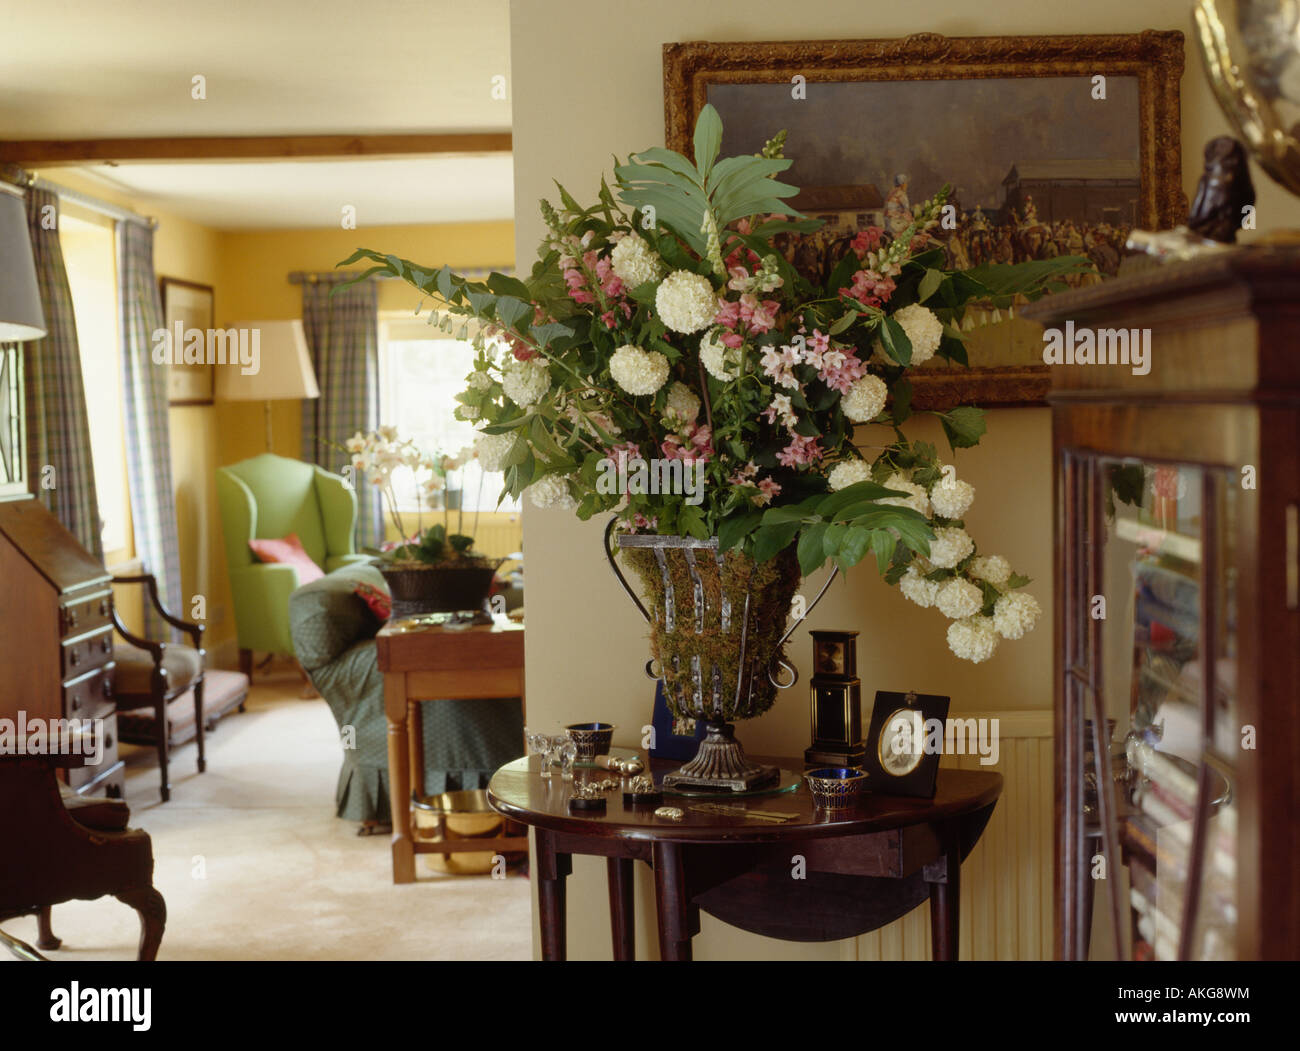 Large Floral Arrangement In Urn On Antique Console Table In Cottage